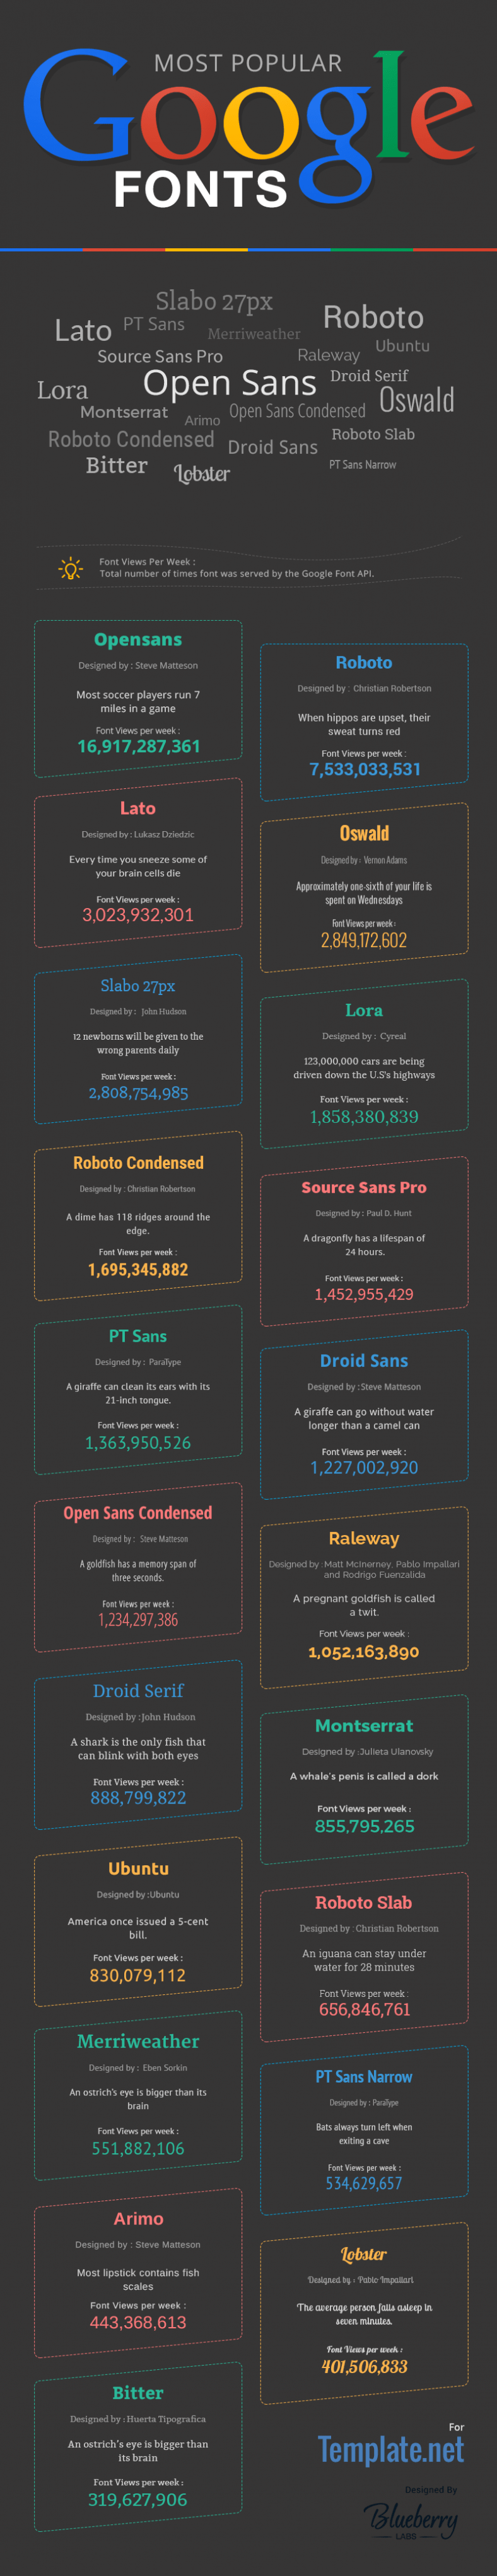 Most Popular Google Fonts – Infographic